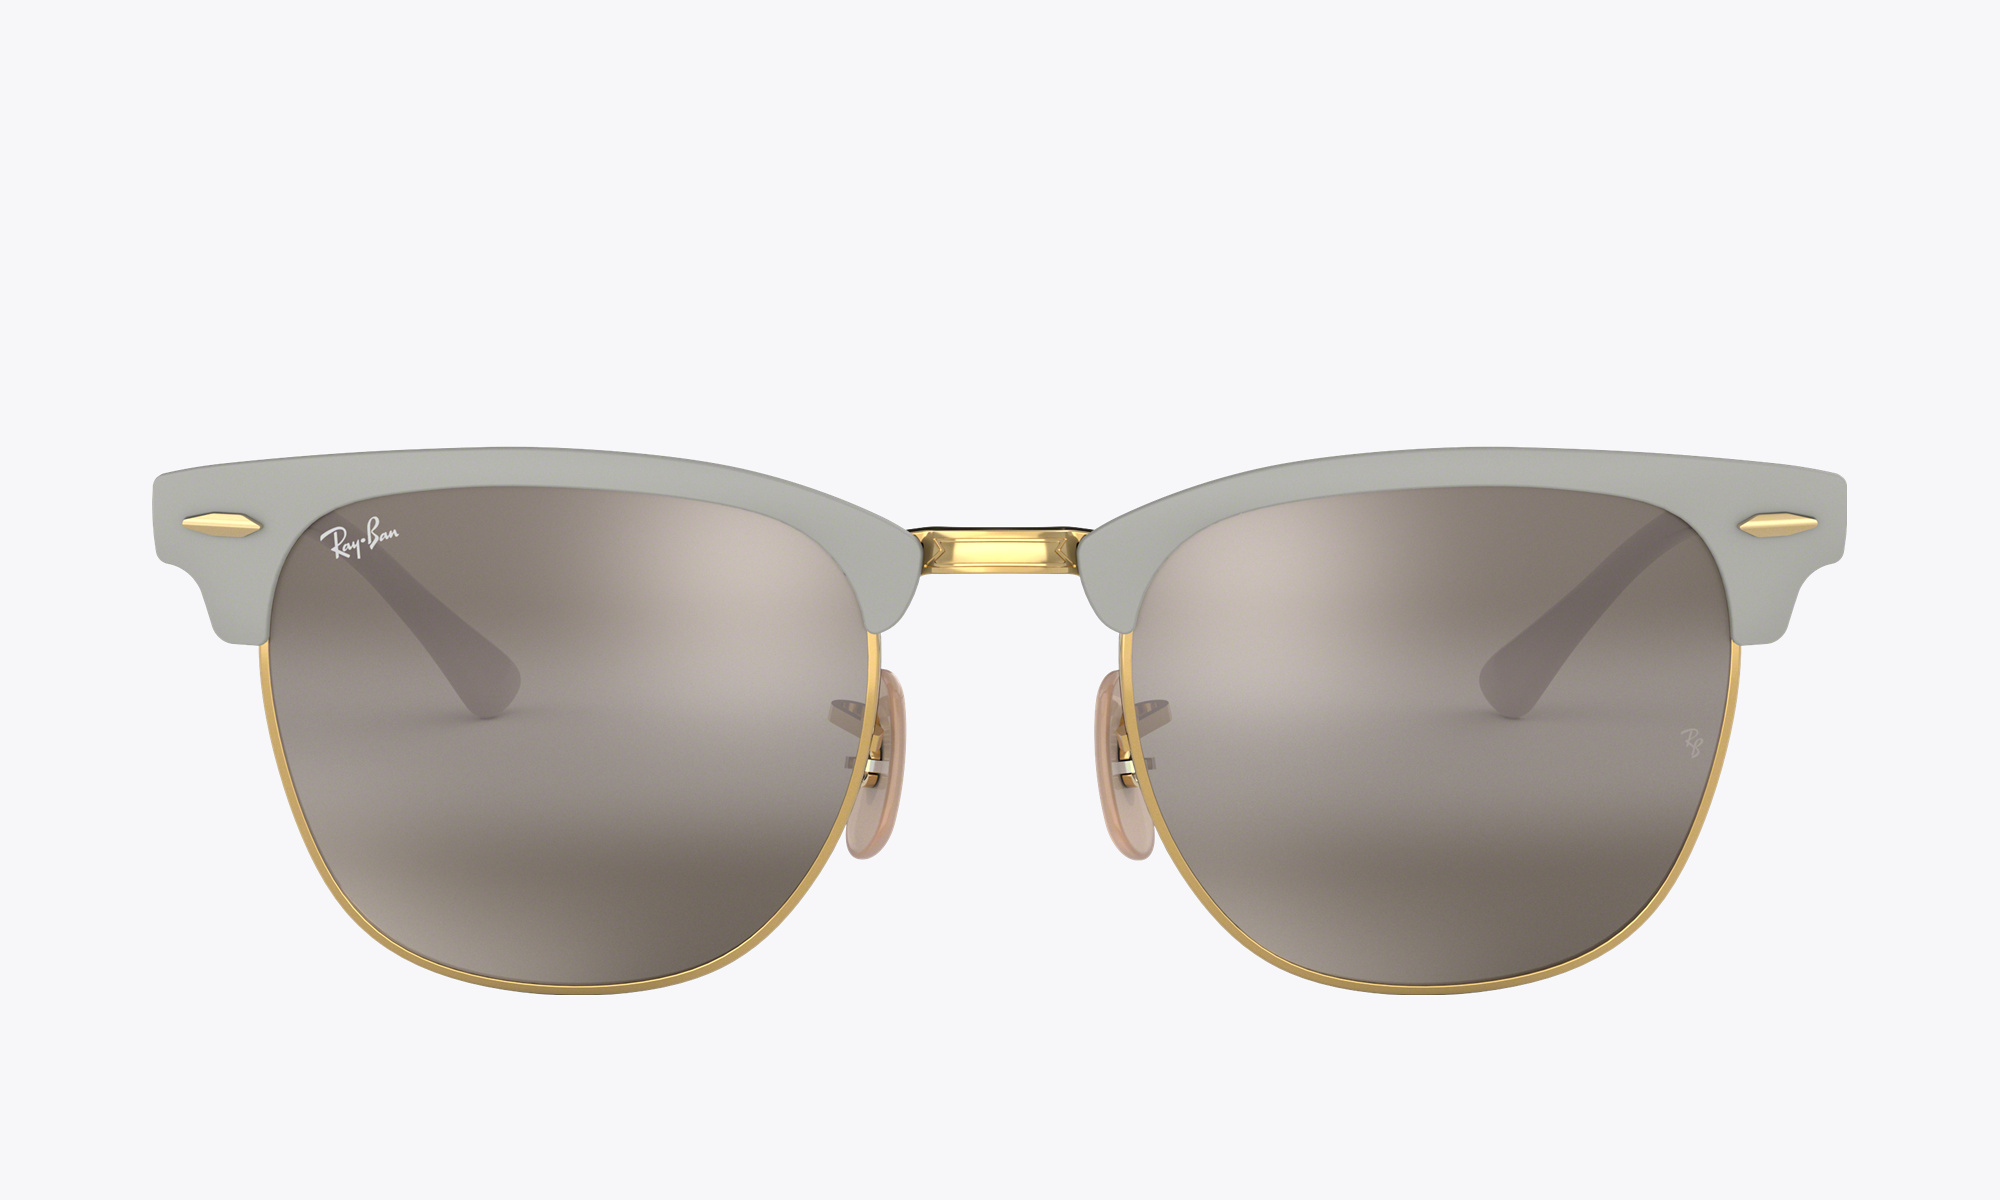 Image of Ray-Ban CLUBMASTER METAL color Grey